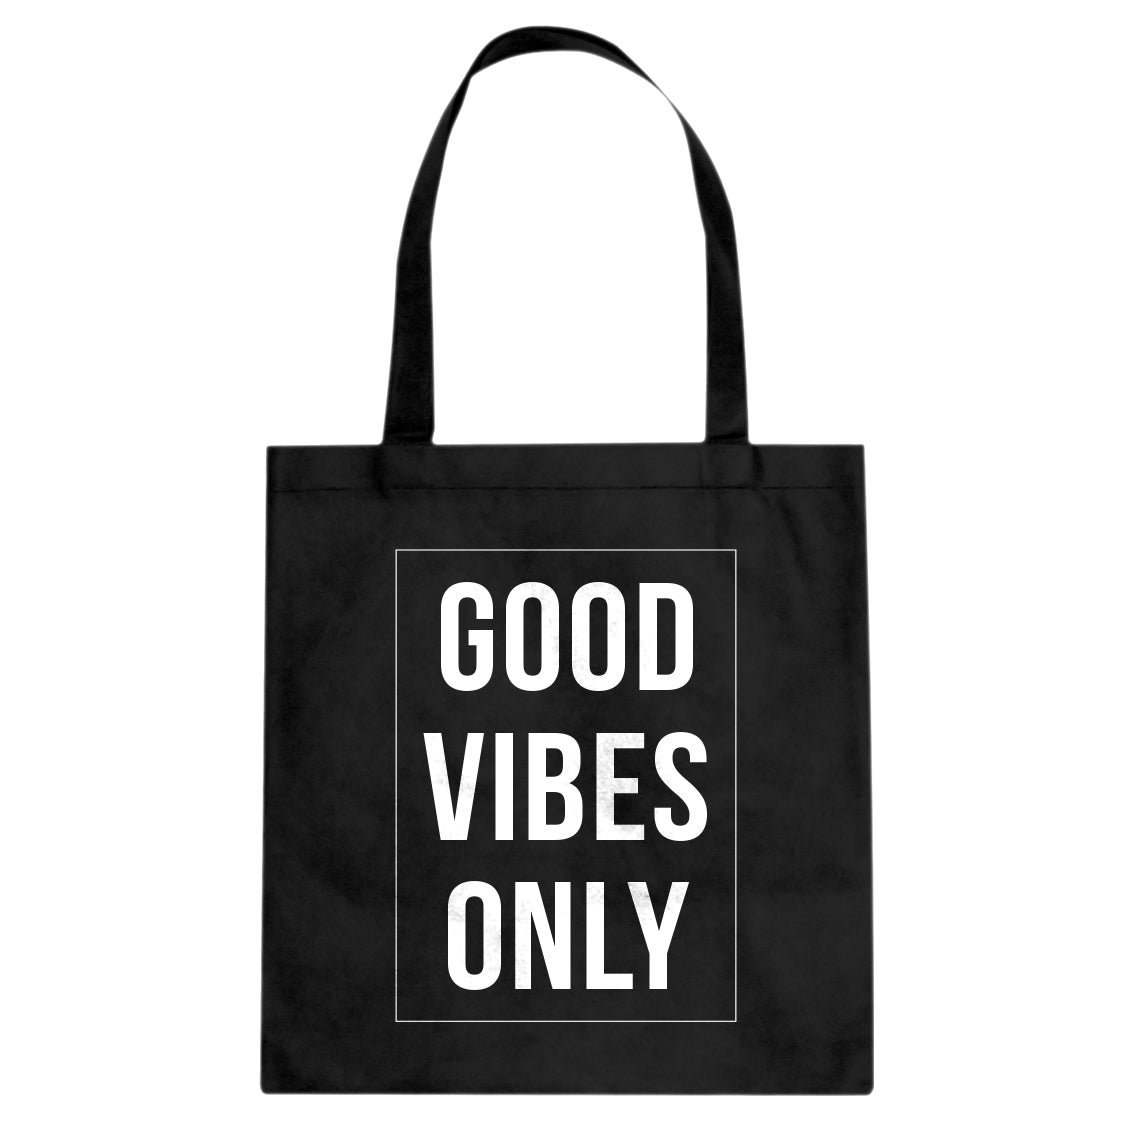 Tote Good Vibes Only Canvas Tote Bag